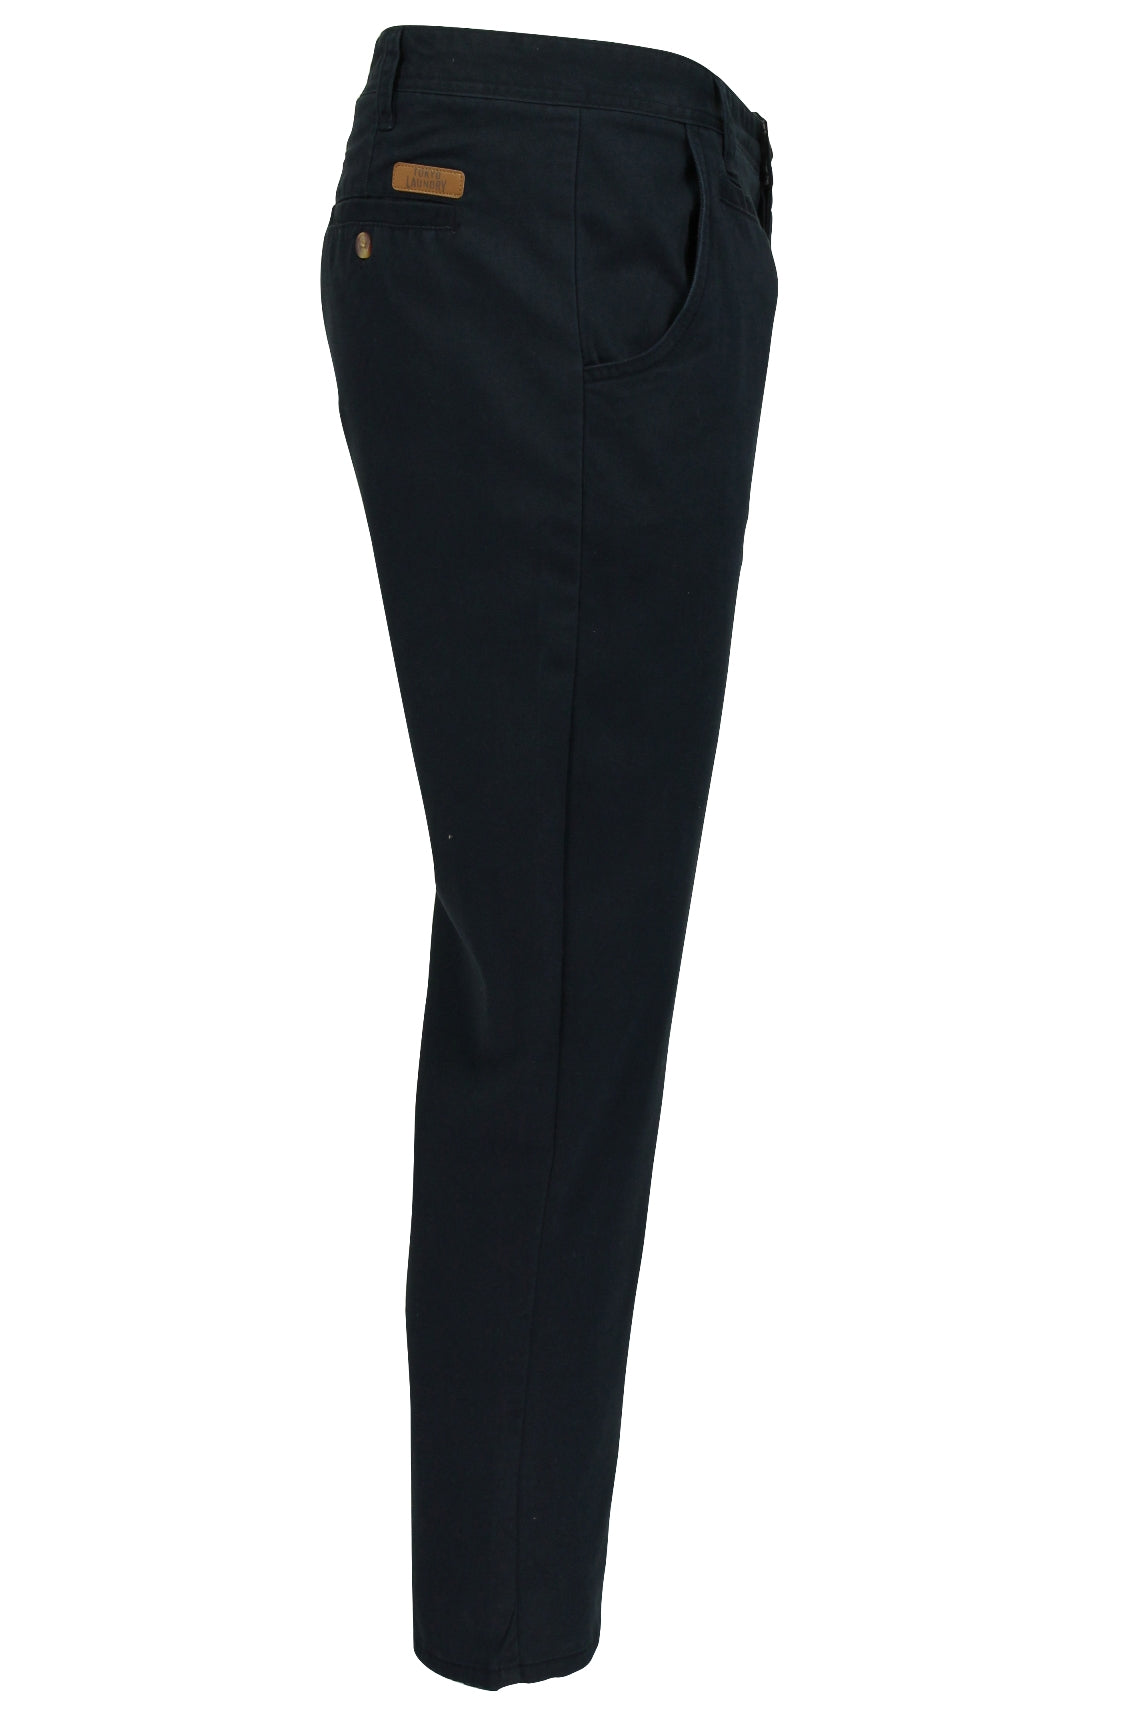 Mens Chino Trousers by Tokyo Laundry 'Damon' Cotton Twill-2